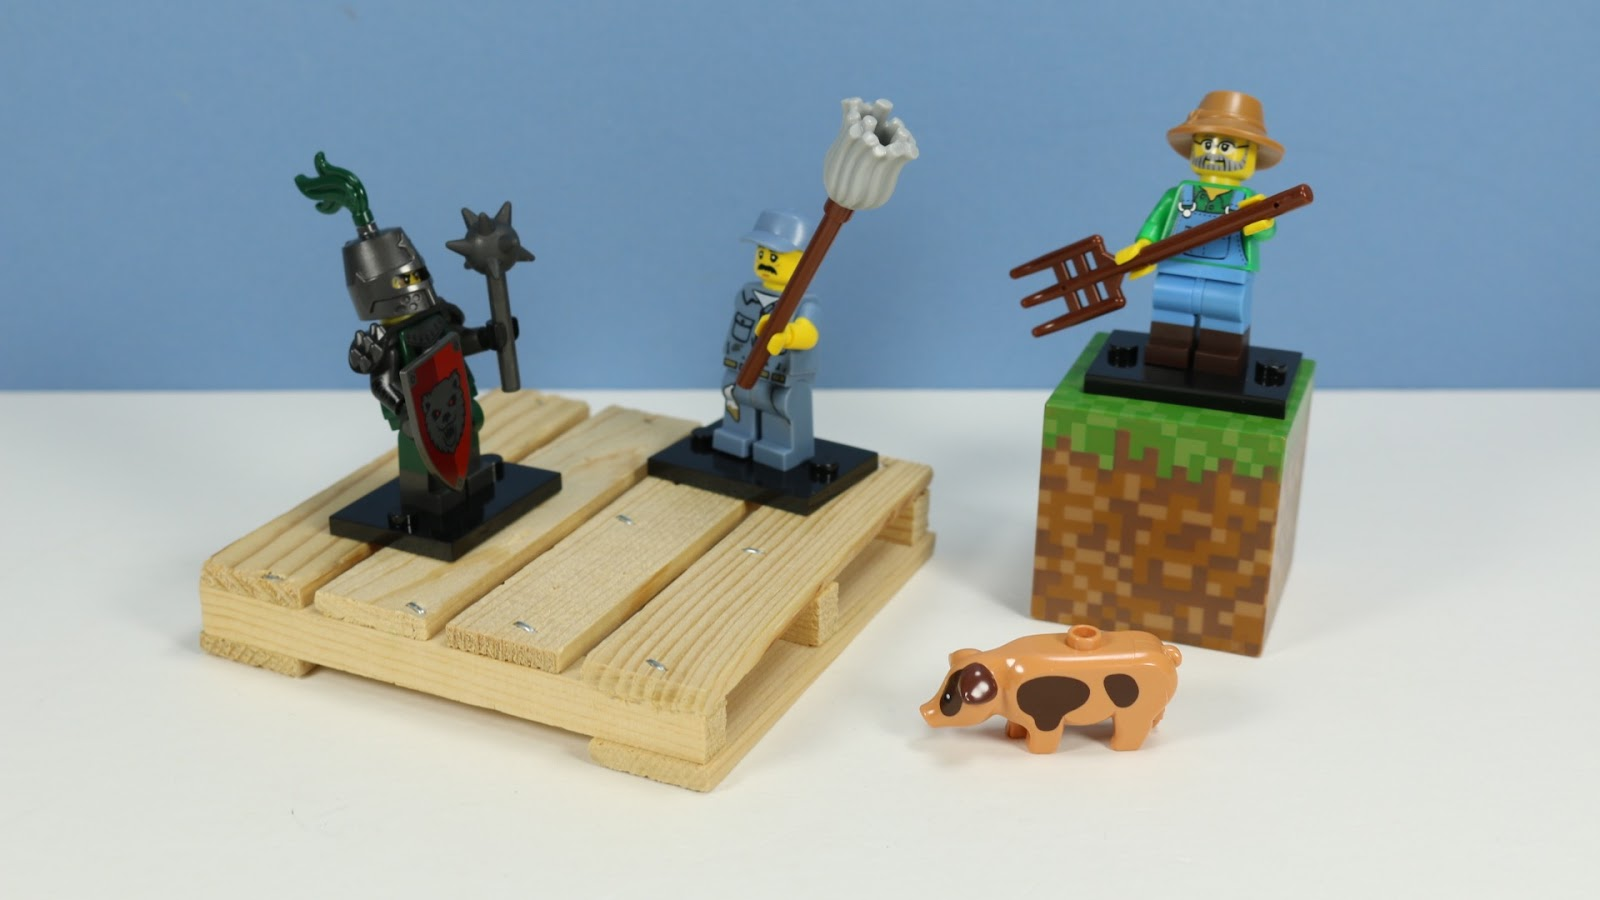 Lego Figures Toys : The toy museum lego minifigures series collection